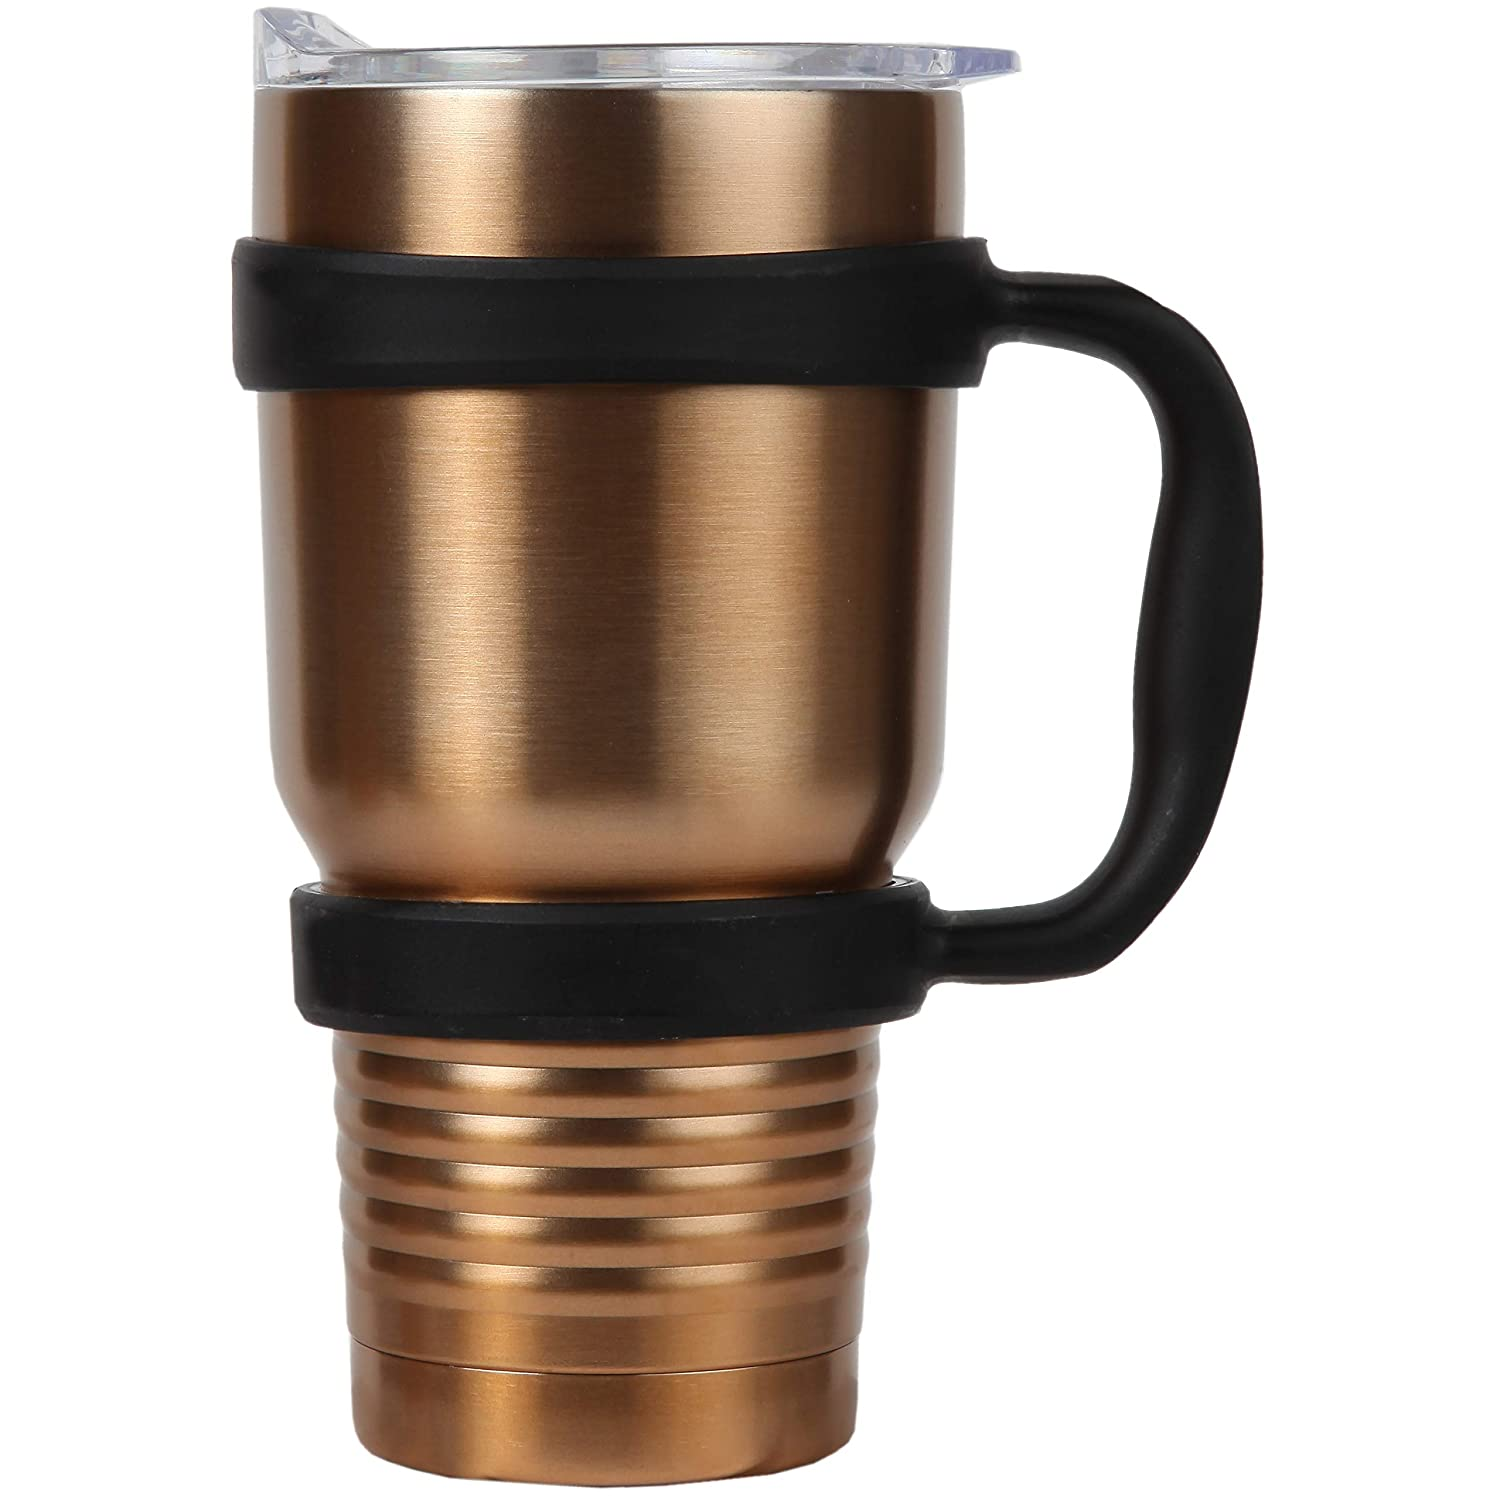 Trenton Gifts Double Wall Insulated Beverage Tumbler With Handle   Keeps Drinks Ice Cold for 24 Hrs or Piping Hot for 8 Hrs   Stainless Steel   Holds Up To 30 oz.